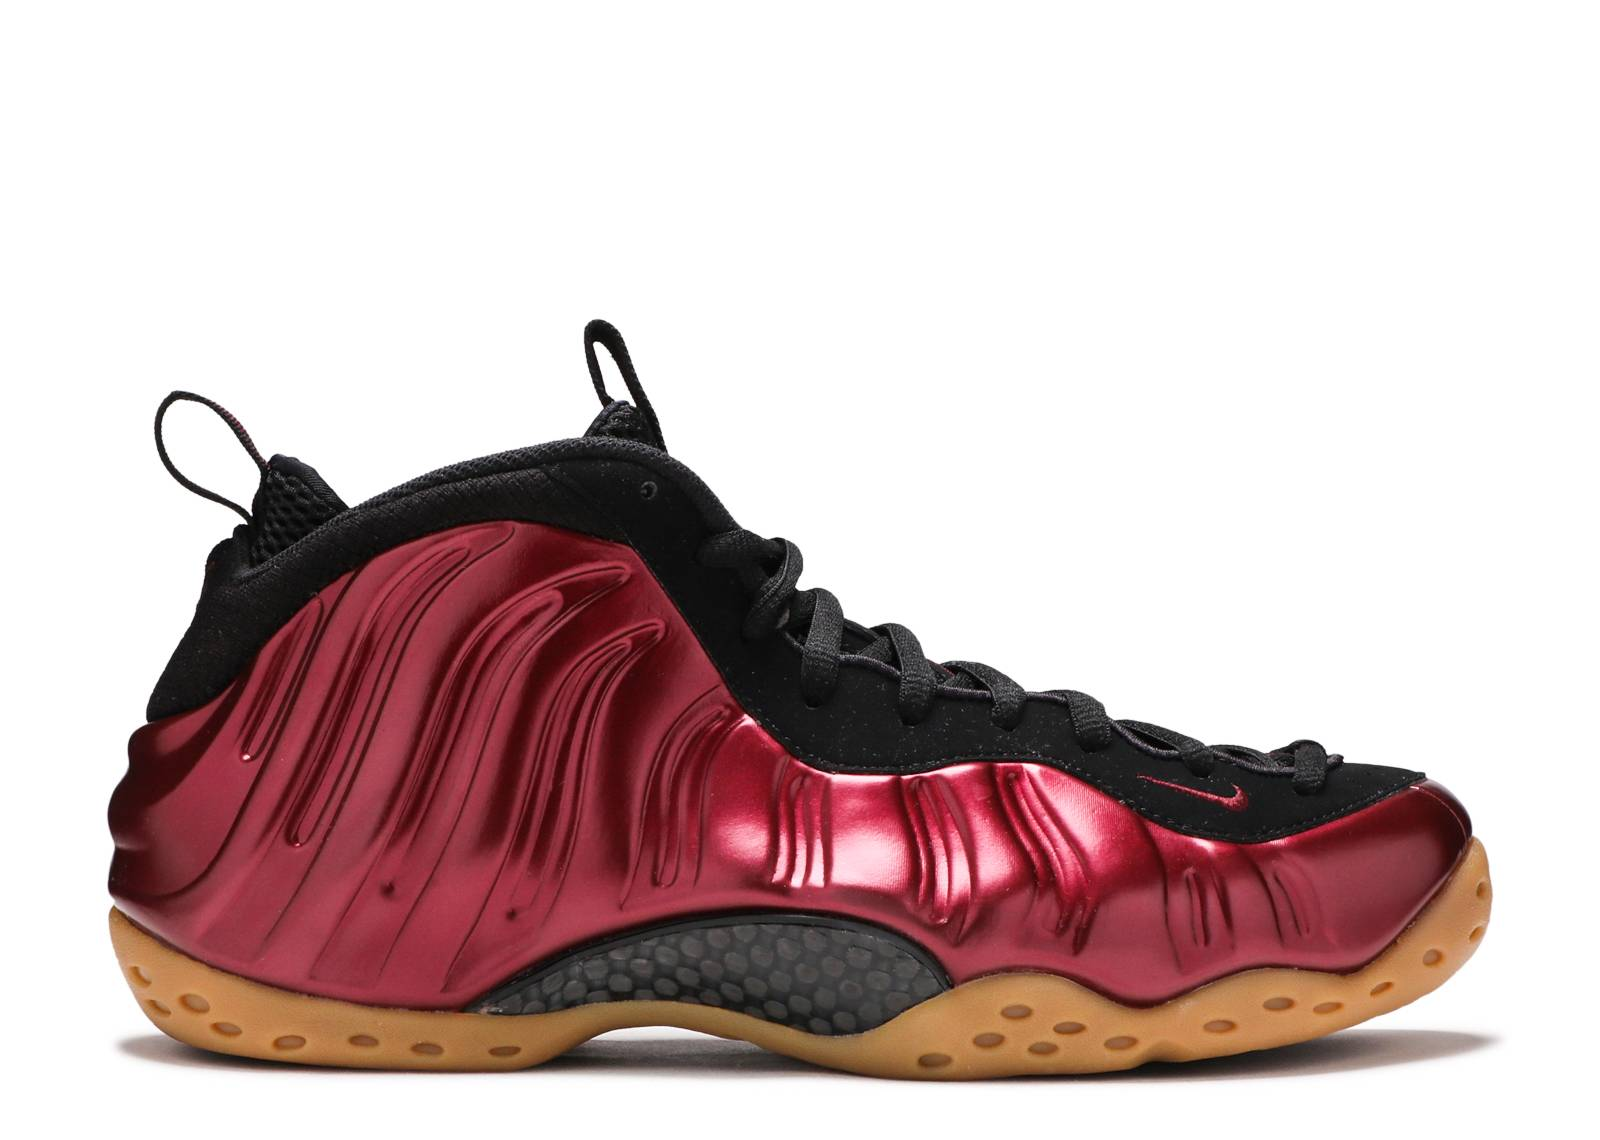 3bf04b7e186 Air Foamposite One - Nike - 314996 601 - night maroon night maroon ...